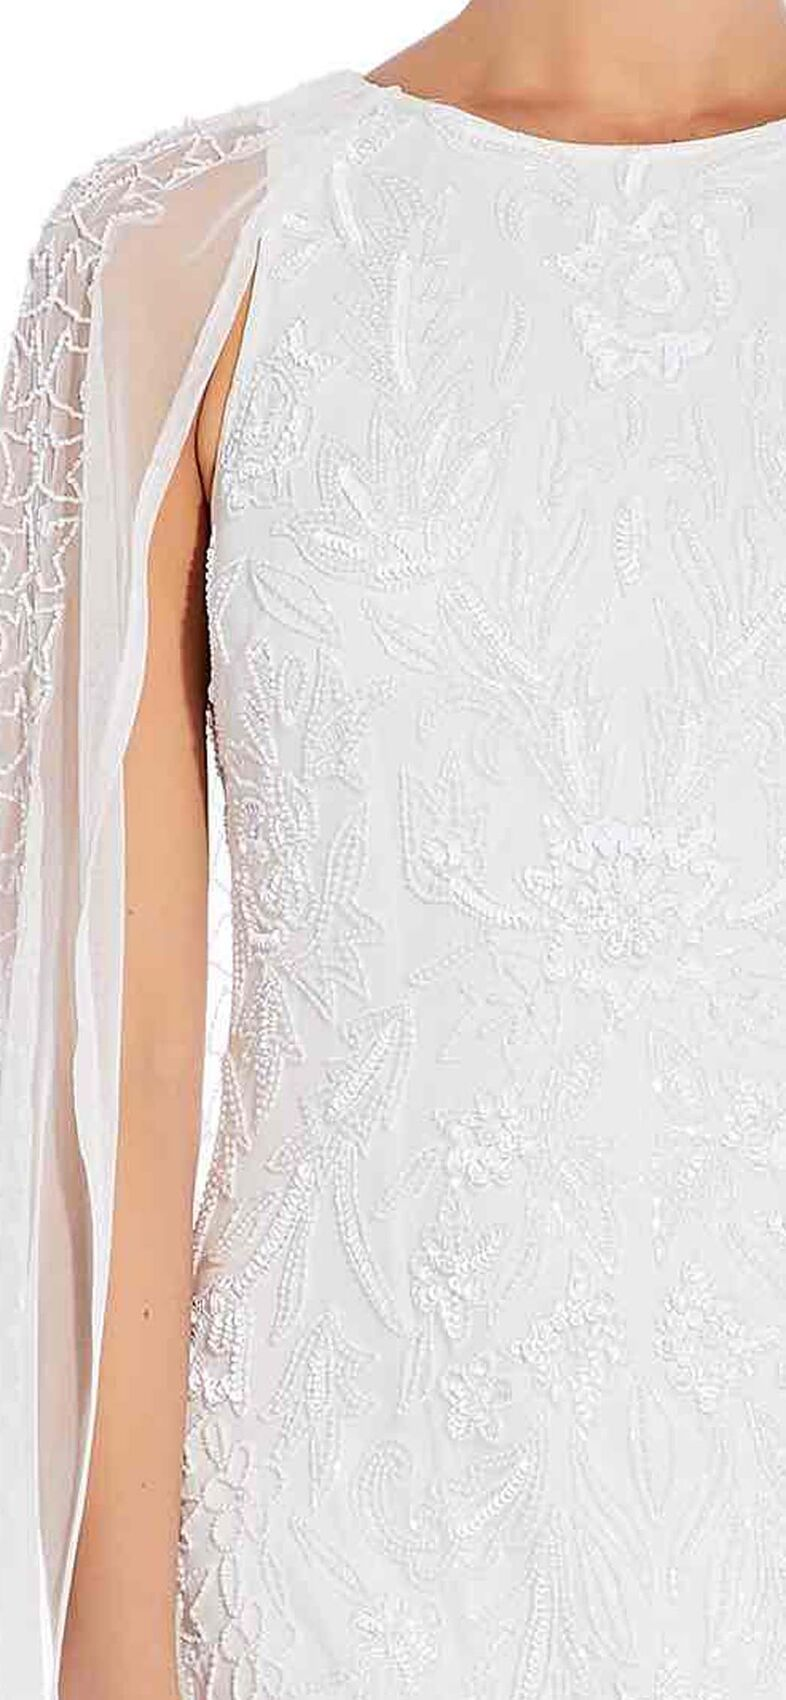 Adrianna Papell - AP1E205287 Beaded Bateau Dress With Cape Sleeves In White